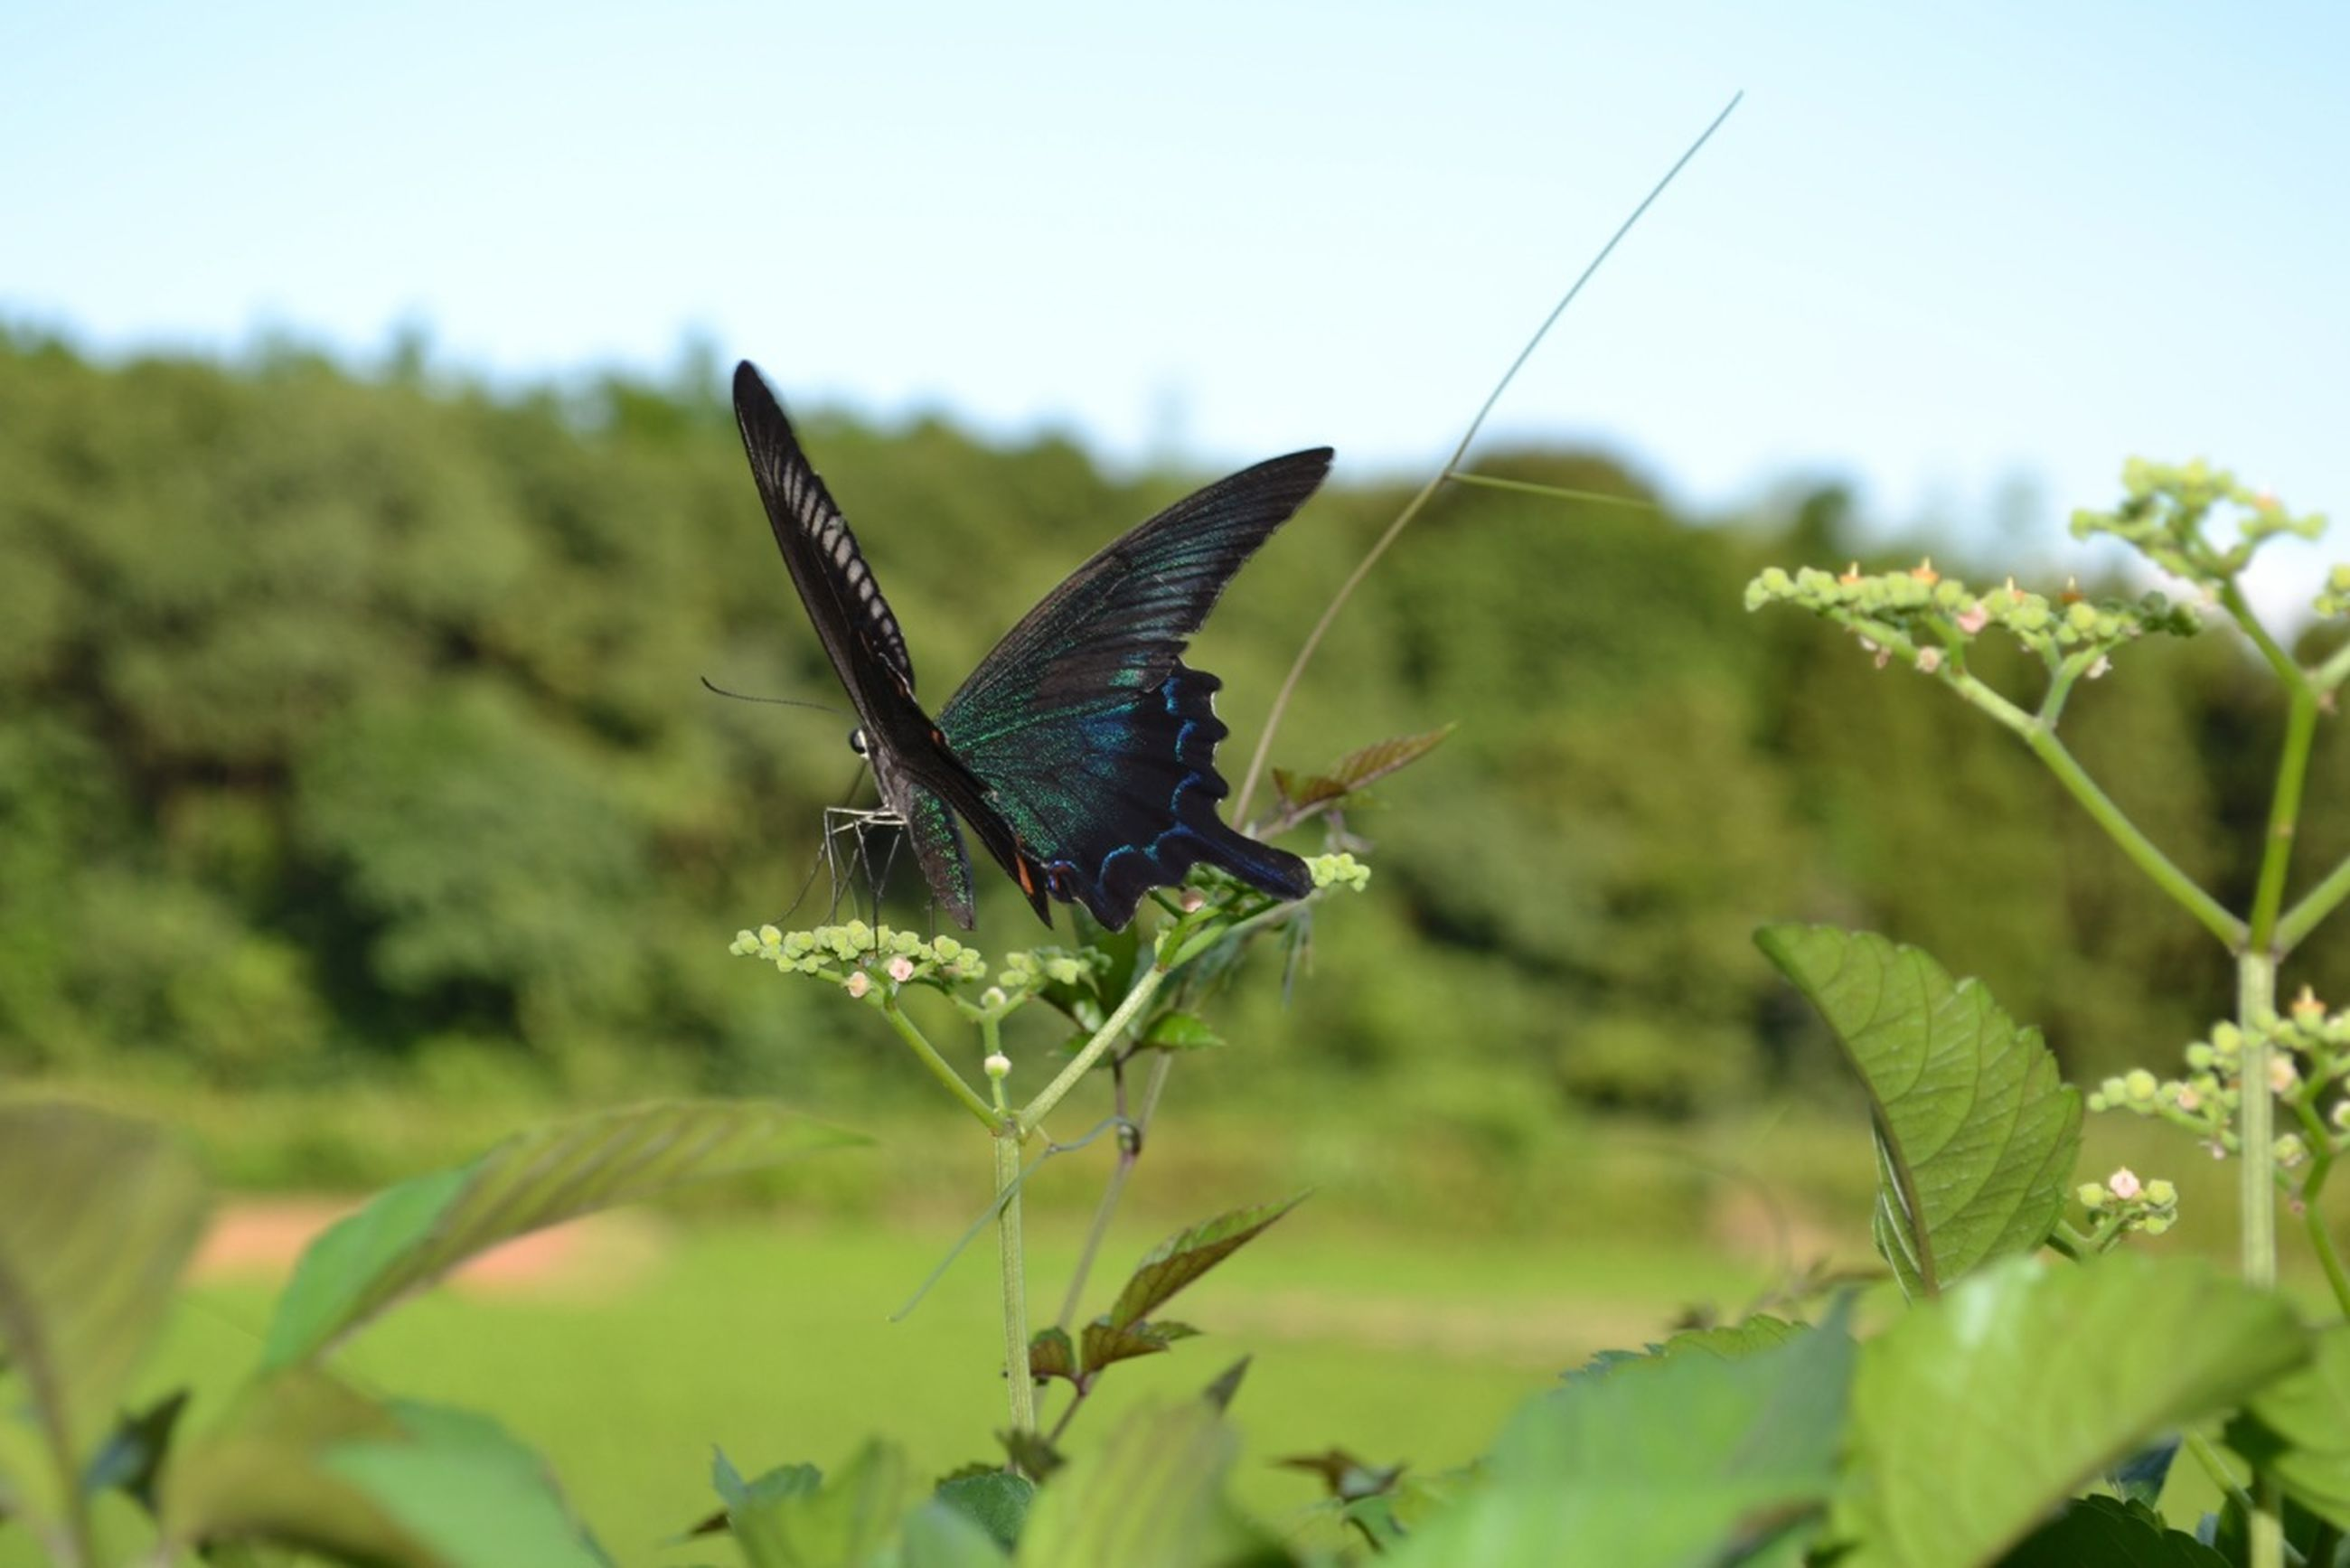 insect, one animal, animal themes, animals in the wild, wildlife, butterfly - insect, butterfly, focus on foreground, plant, green color, close-up, leaf, animal wing, nature, growth, beauty in nature, dragonfly, day, outdoors, full length